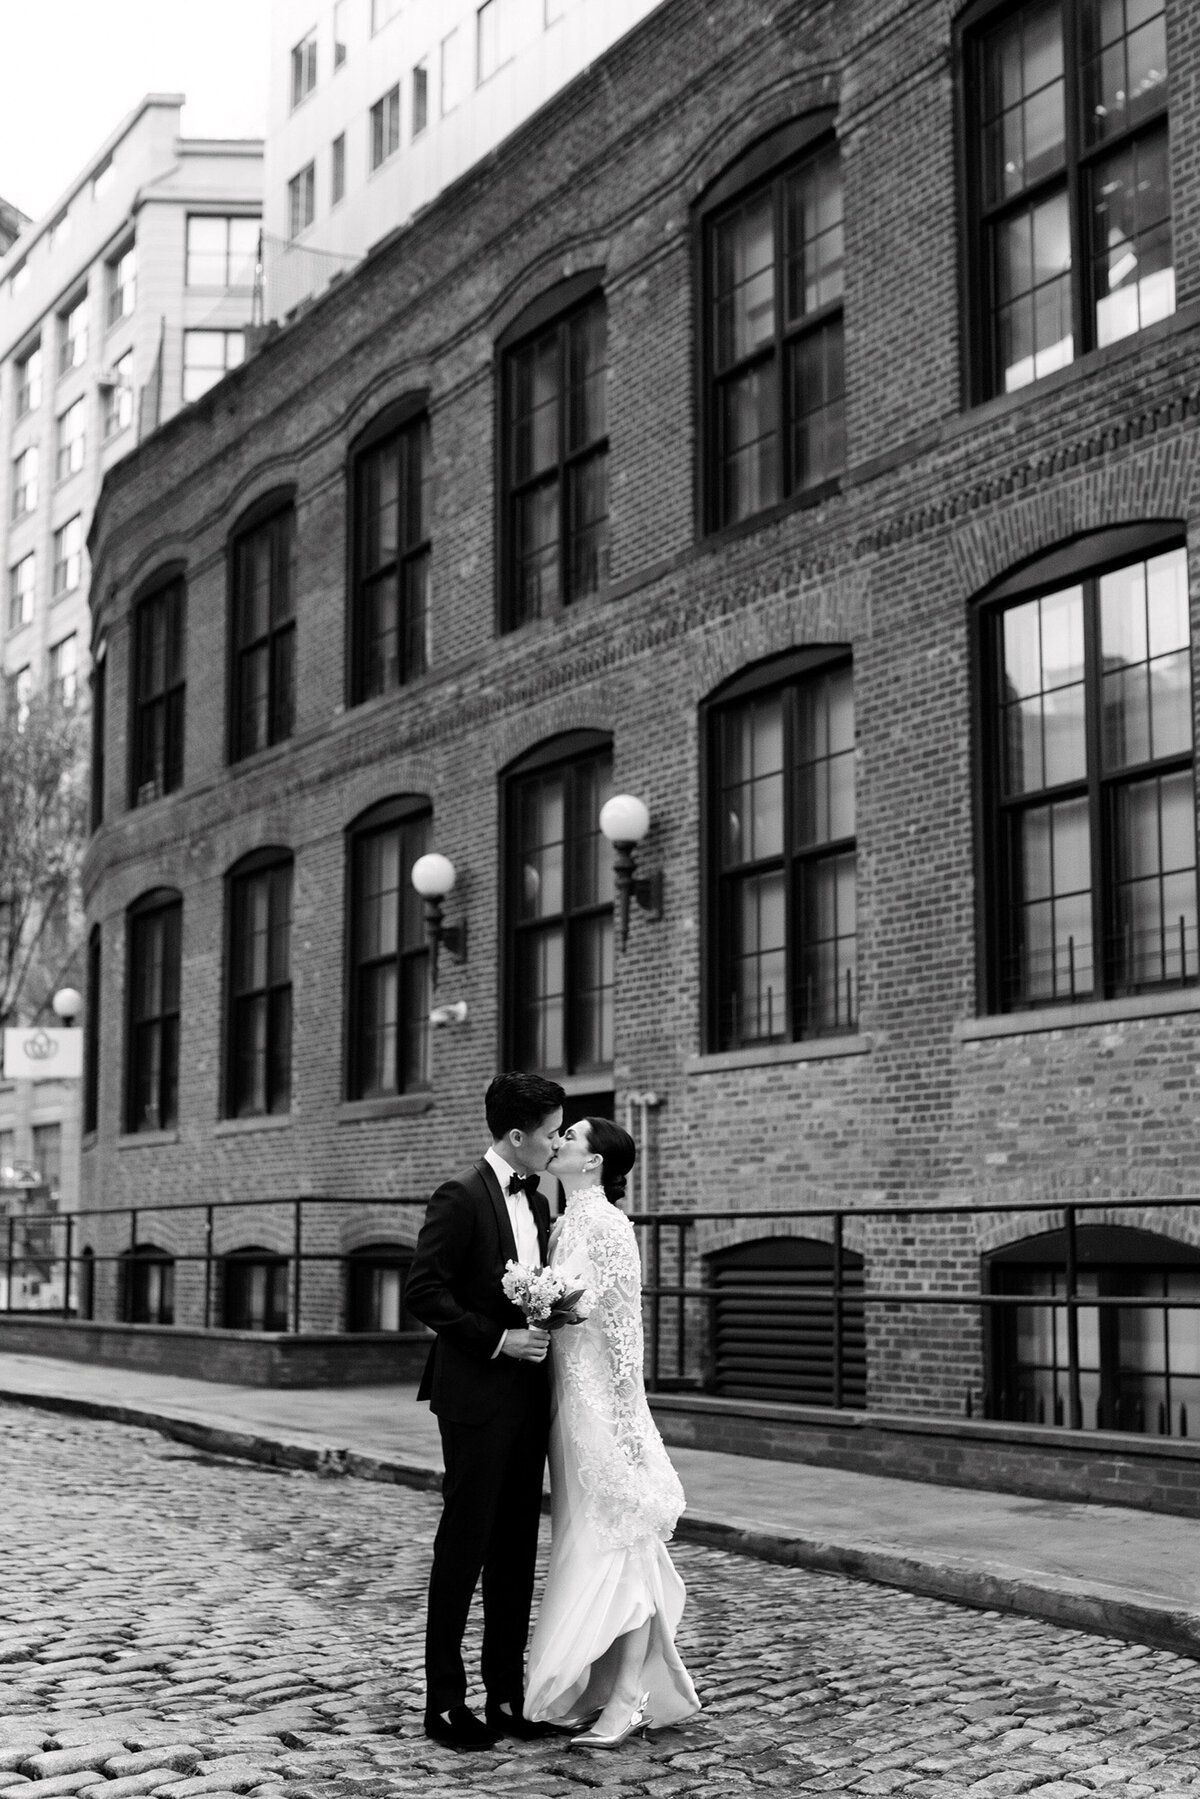 Dumbo_Loft_0230_Cate_Bryan_Wedding_1492